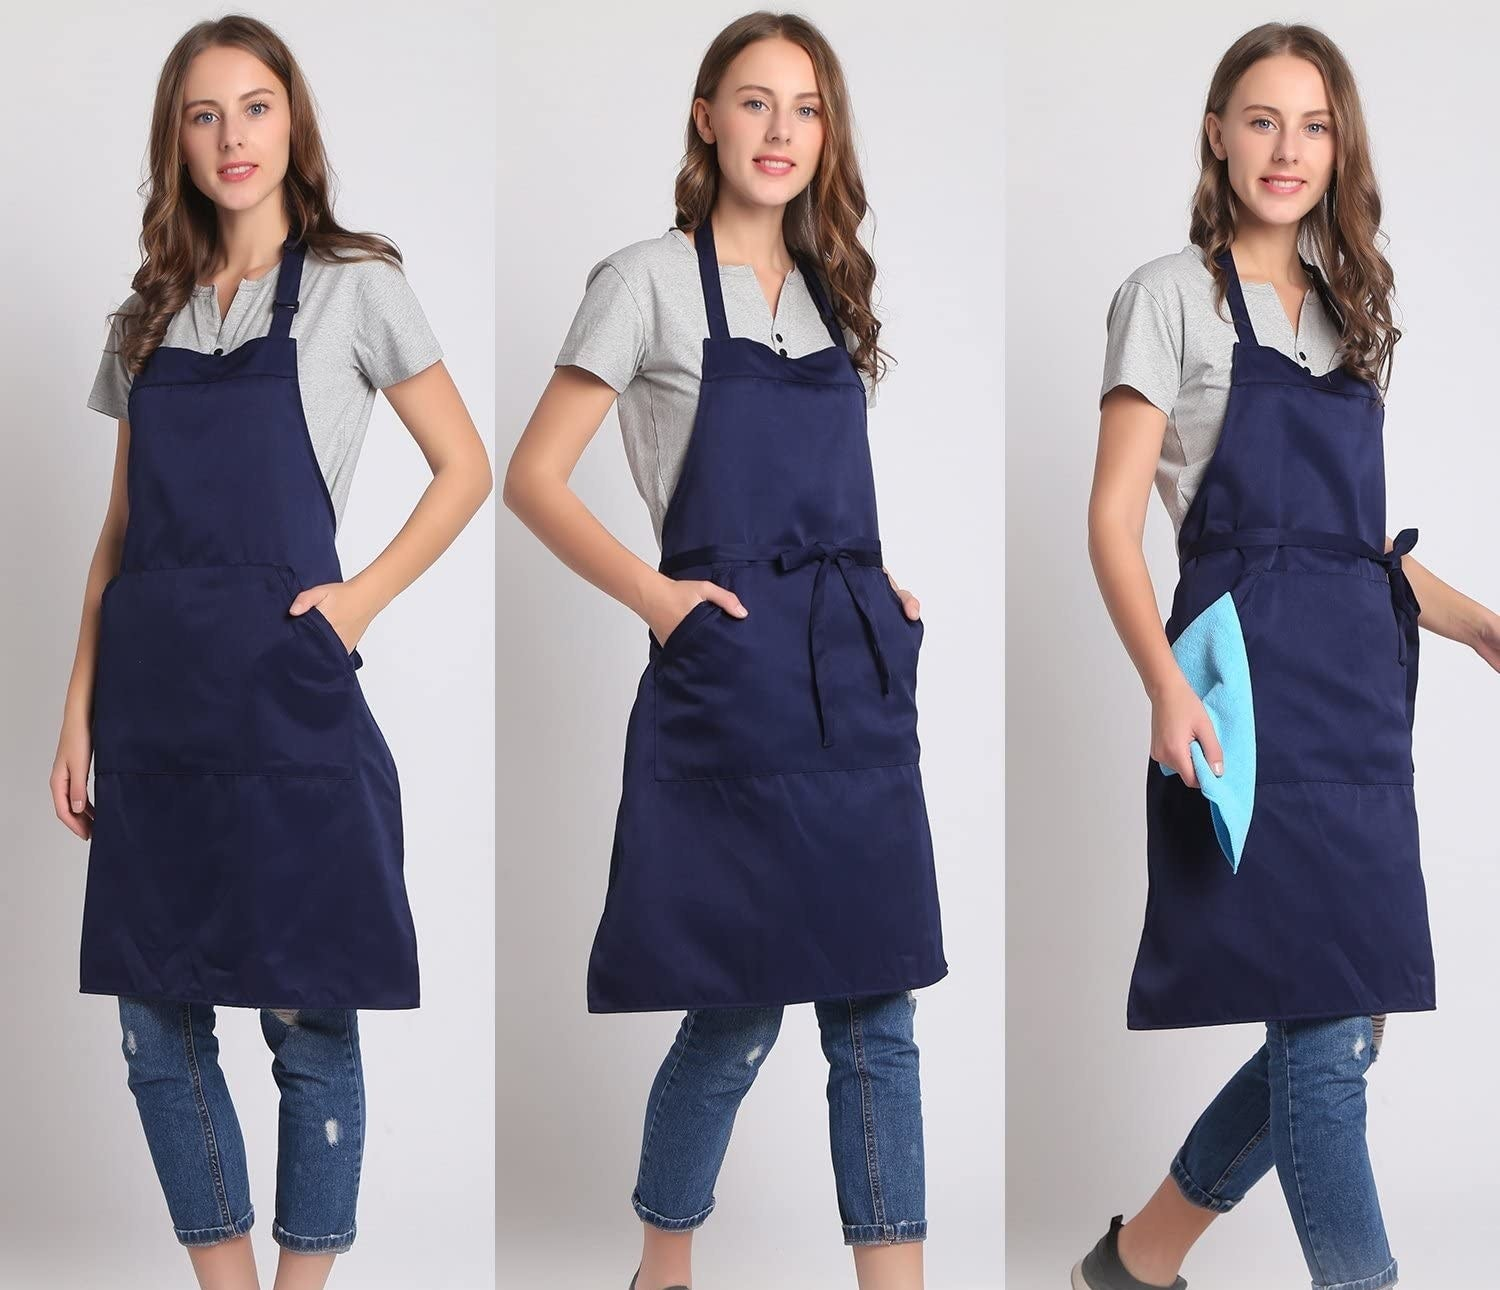 person wearing the apron